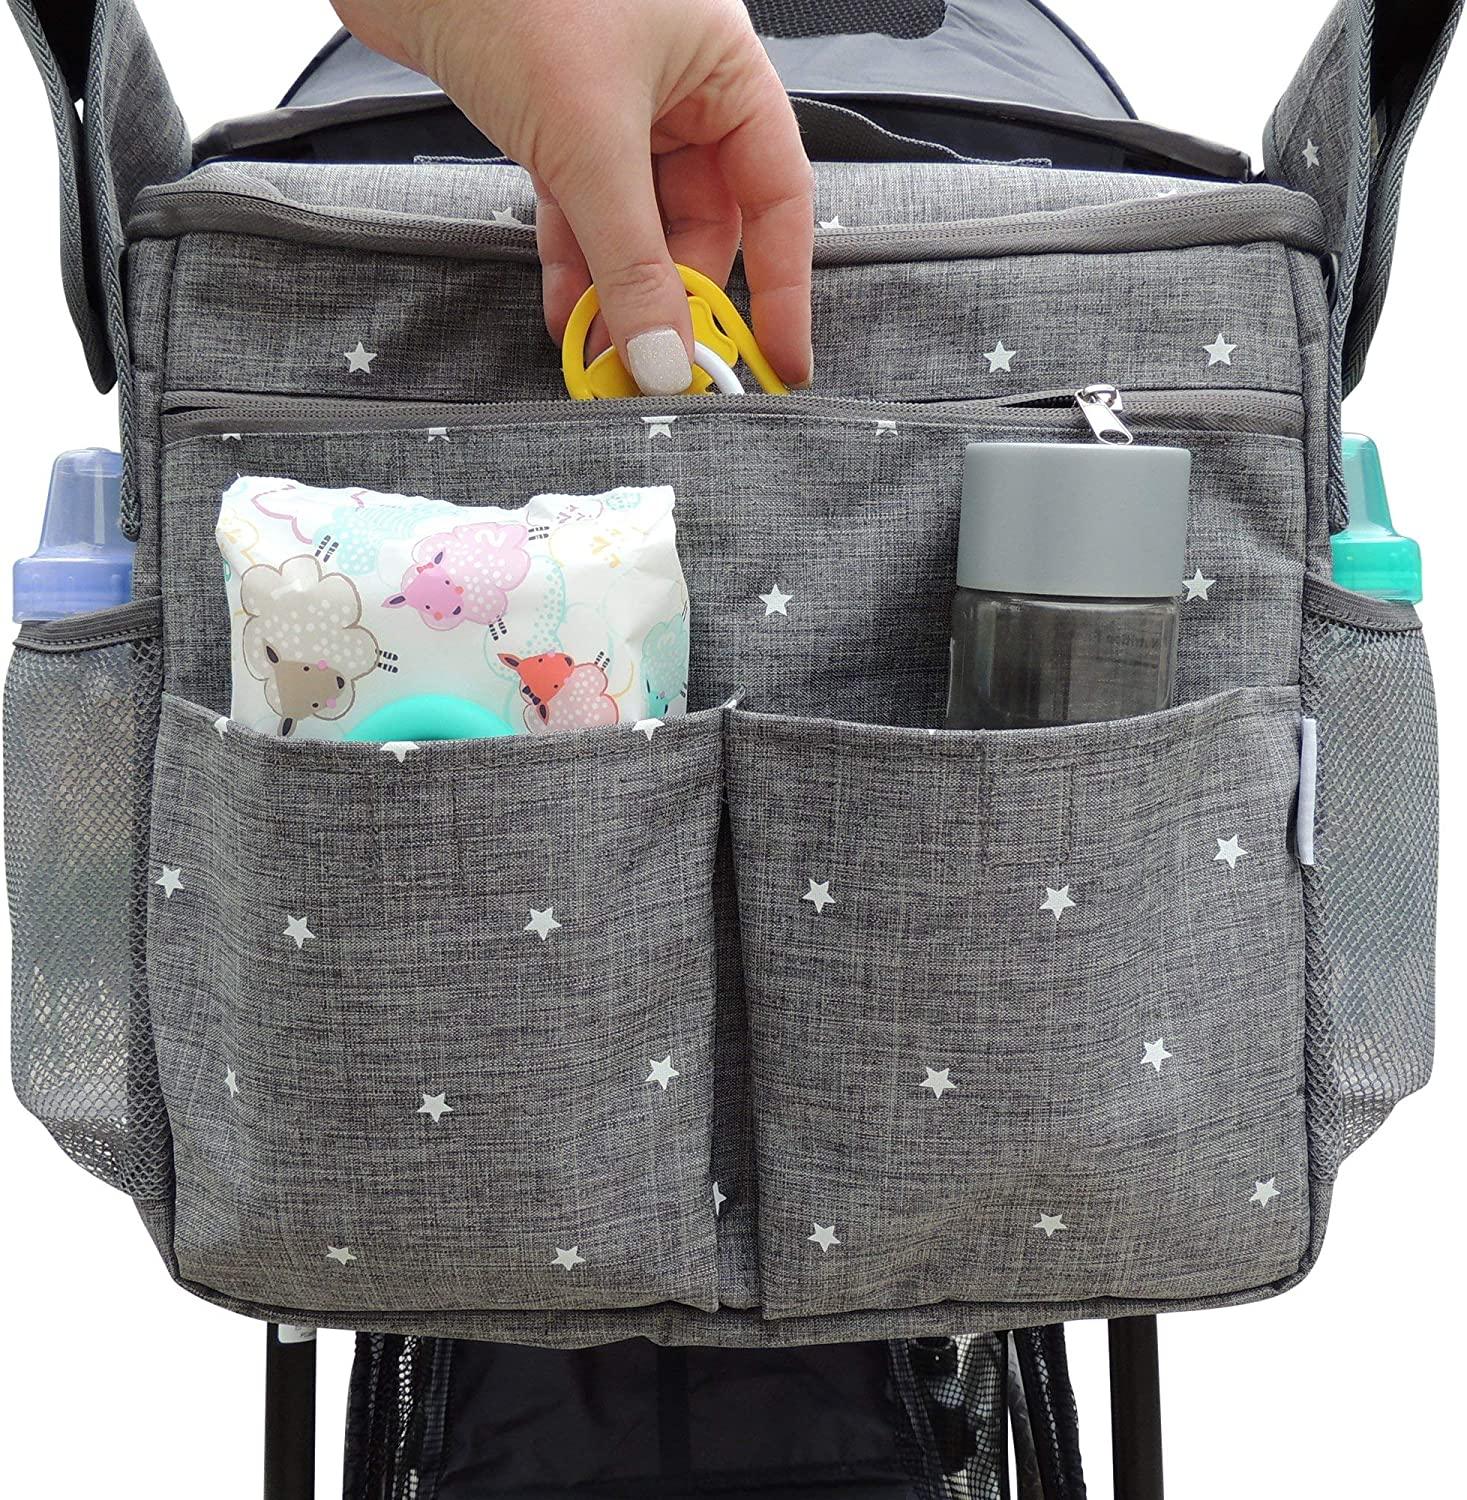 YOUTAI Stroller Organizer Bag, Large Parents Console Bag with Cup Holders and Storage Pockets, Universal Design to Easily Attaches to Any Stroller